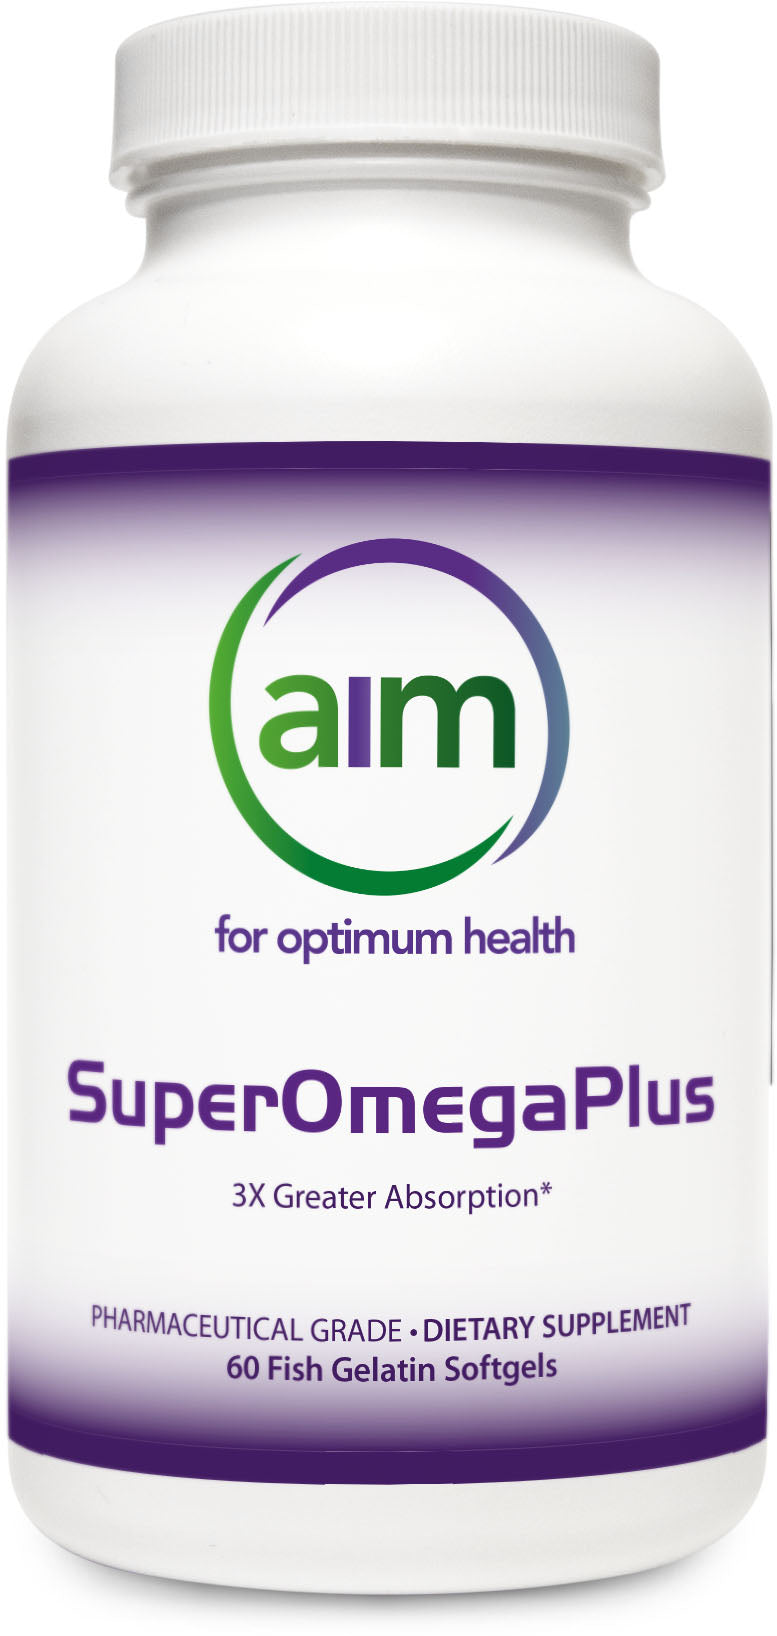 SuperOmegaPlus (60 fish gelatin softgels)